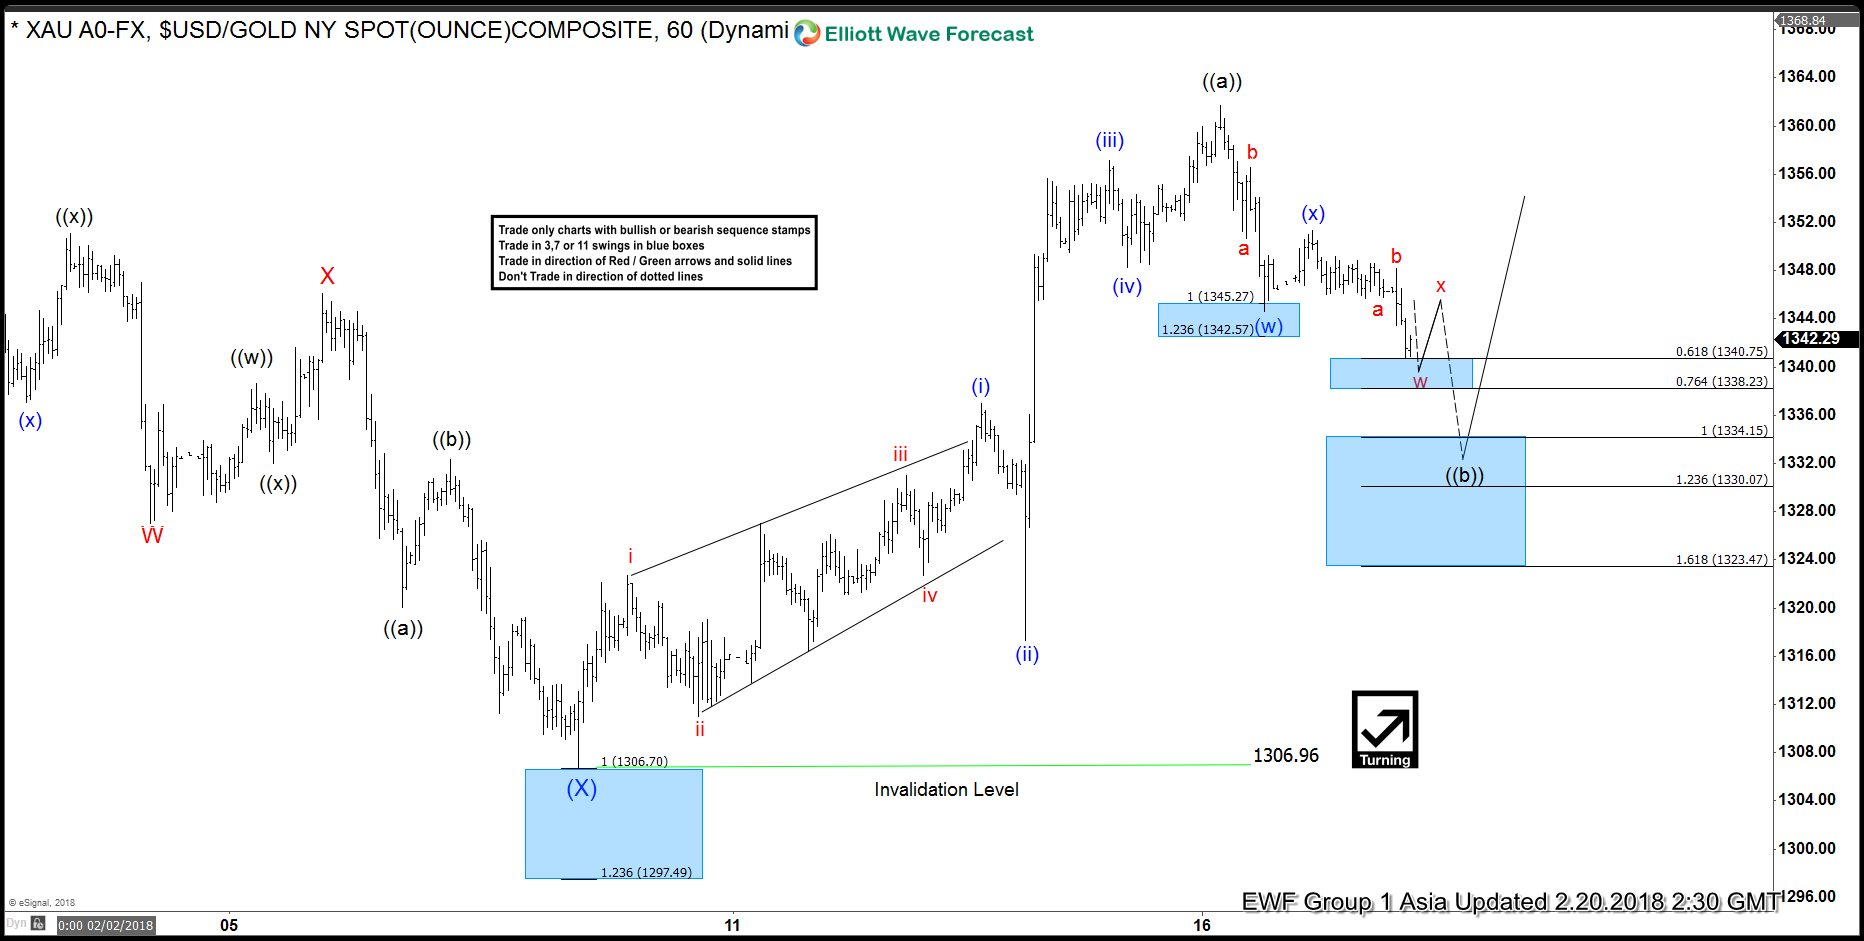 Elliott Wave Analysis: Gold Favored Higher Against 1306.96